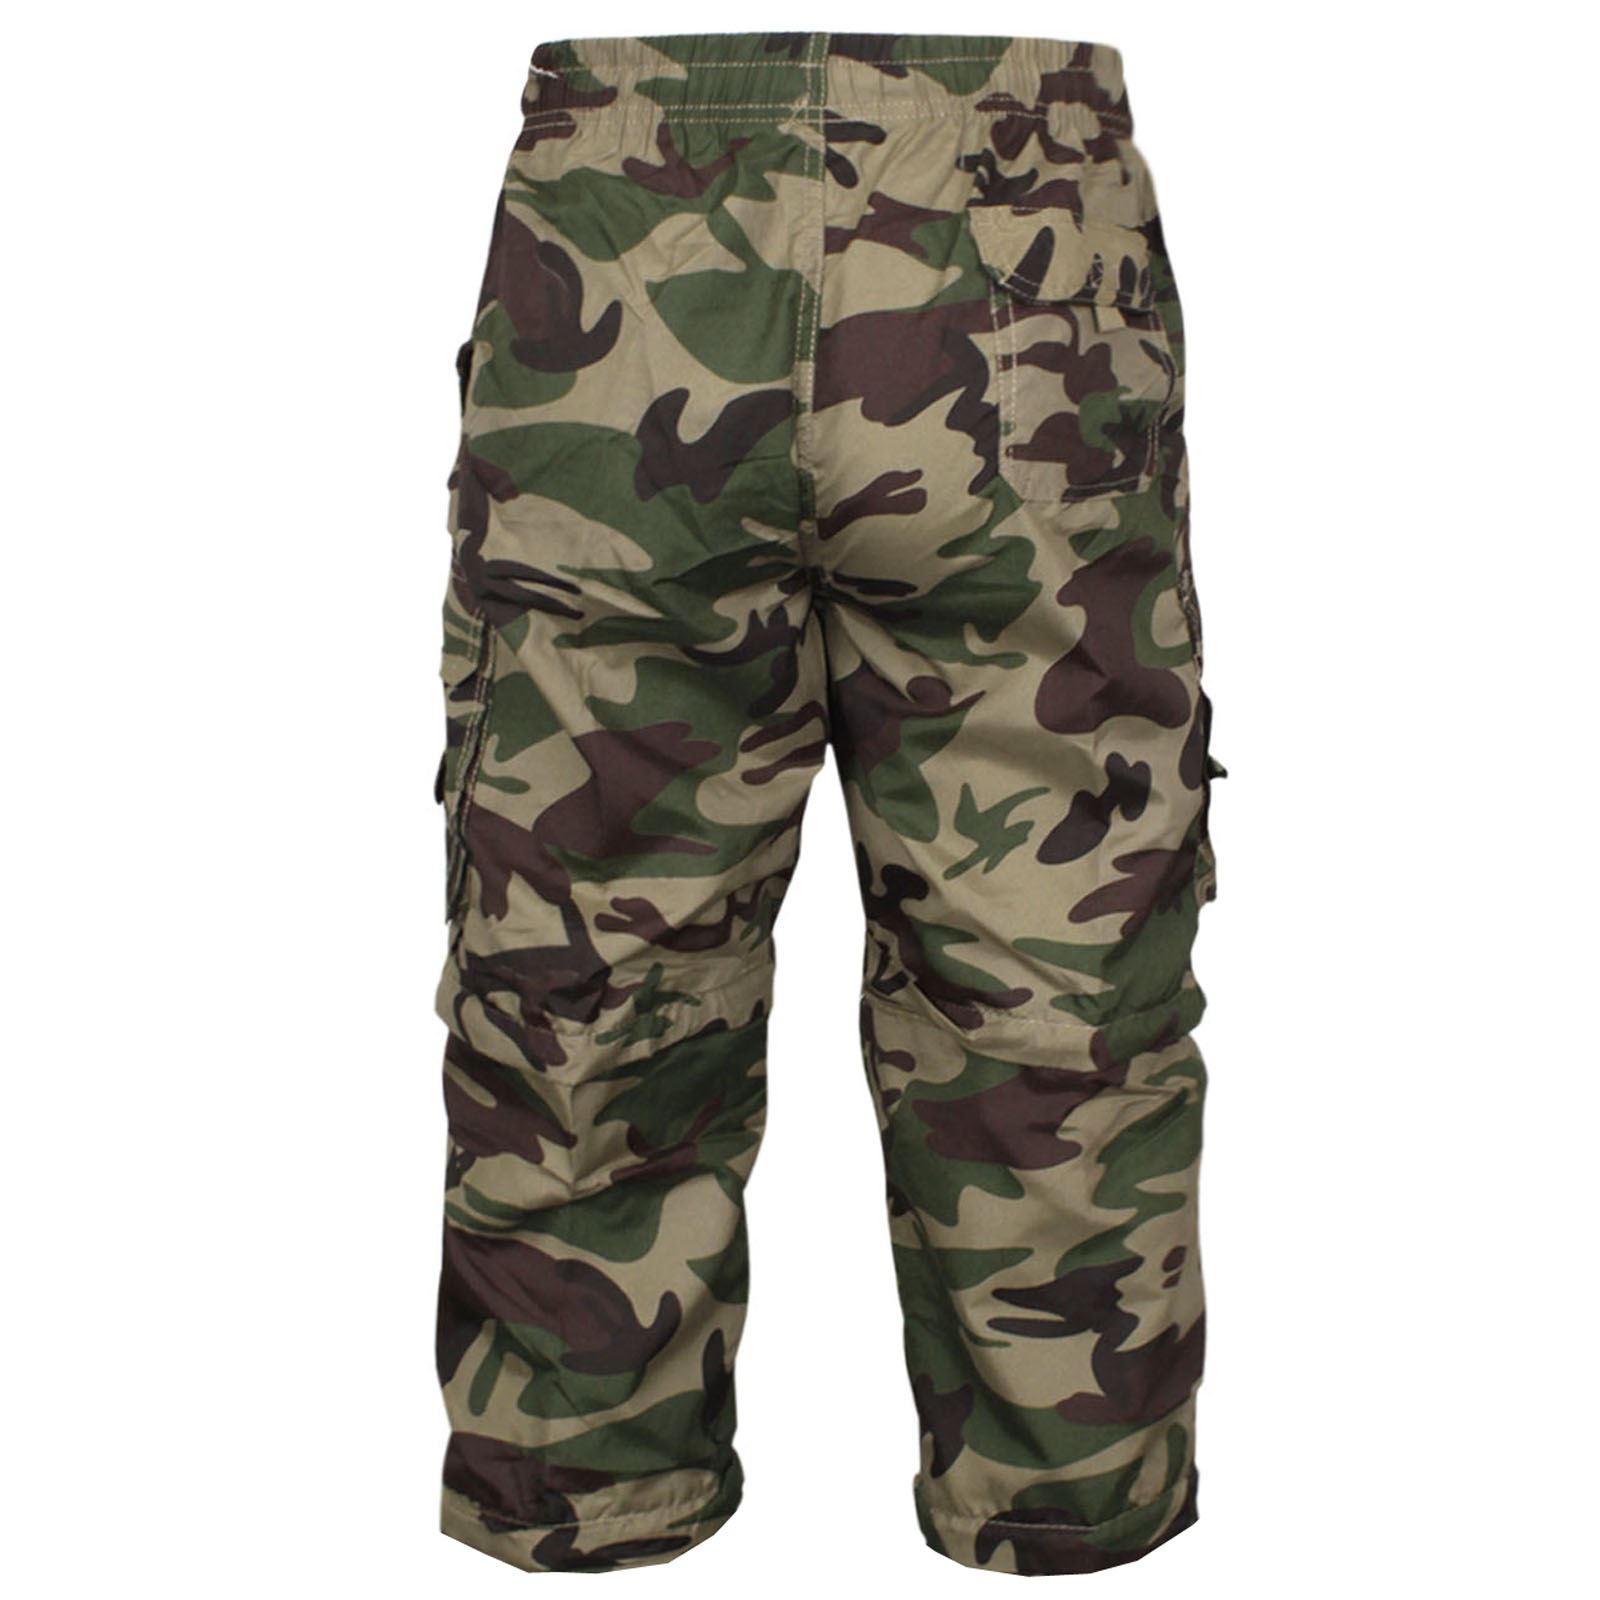 MENS-2-IN-1-CAMOUFLAGE-SHORTS-ARMY-ZIP-OFF-COMBAT-CARGO-TROUSERS-WORK-PANT-S-2XL thumbnail 4